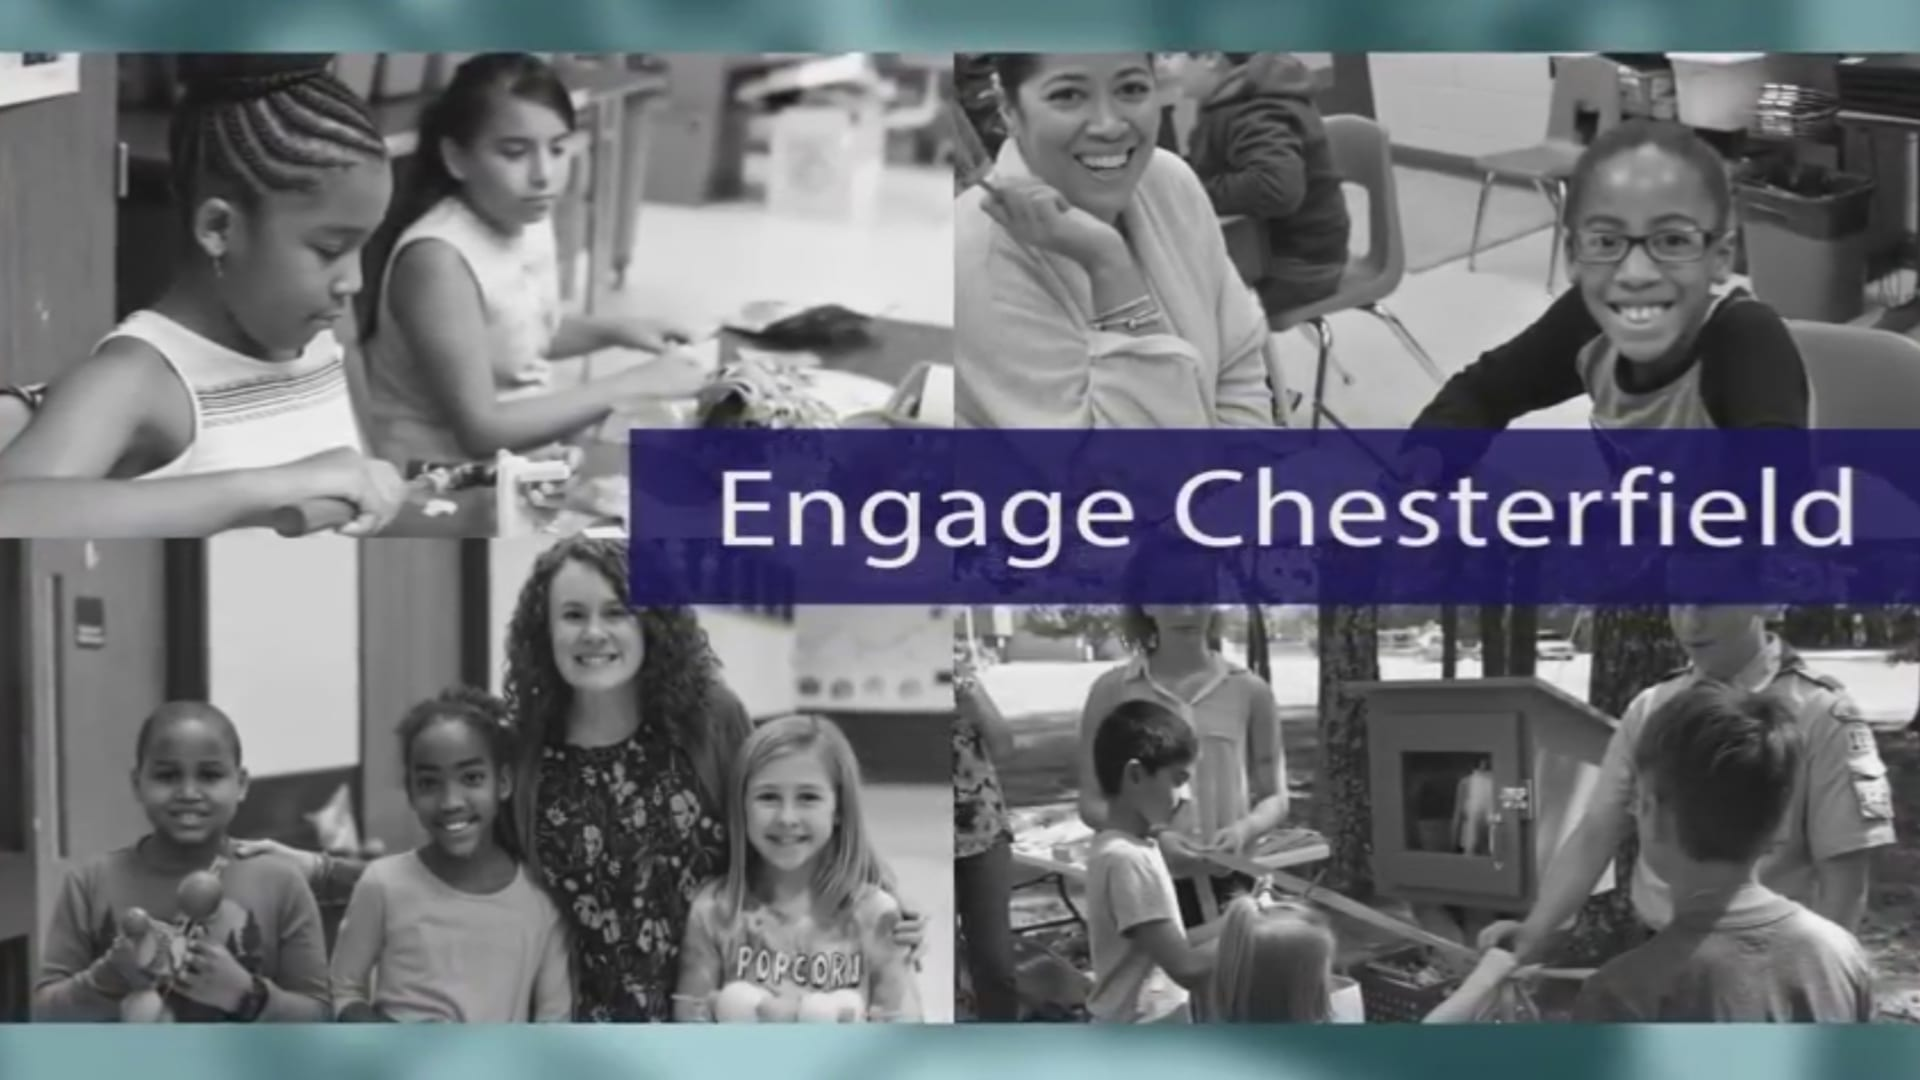 Engage Chesterfield